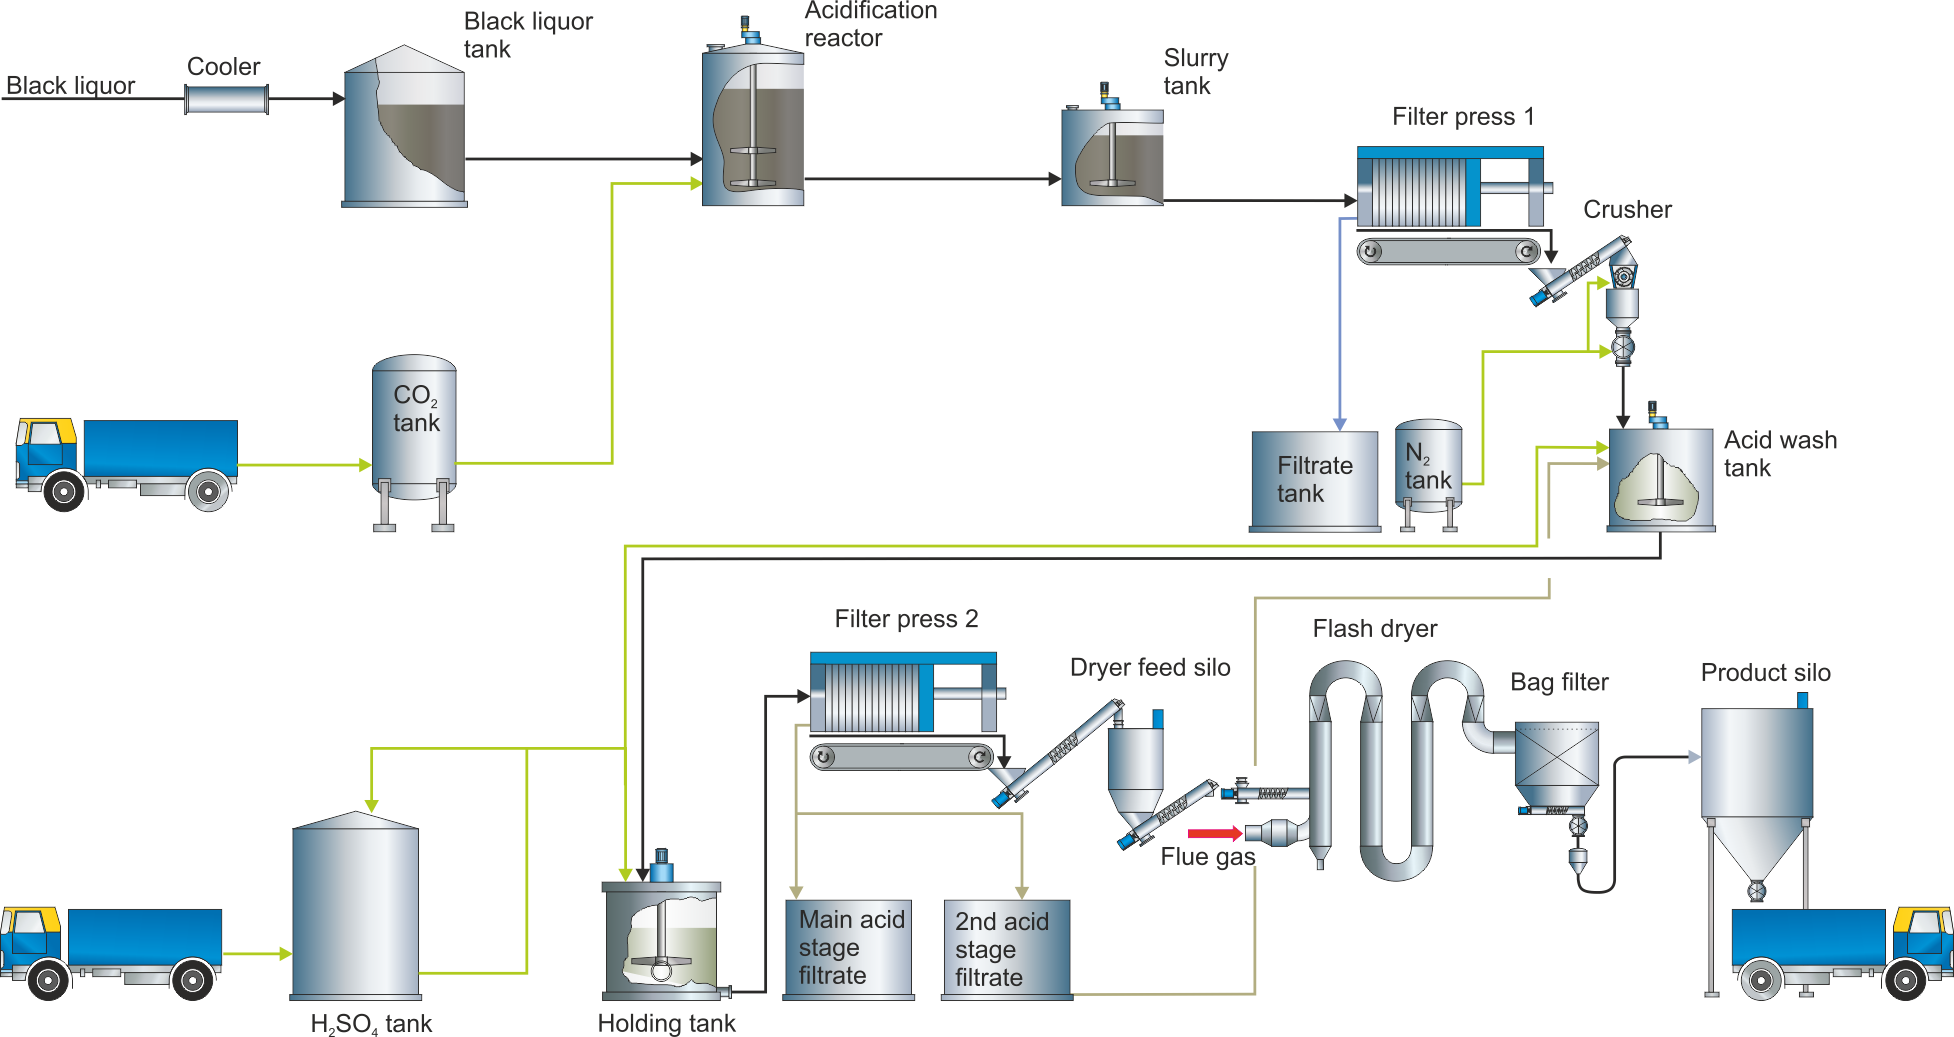 Lignin Recovery And Sulfuric Acid Production In A Kraft